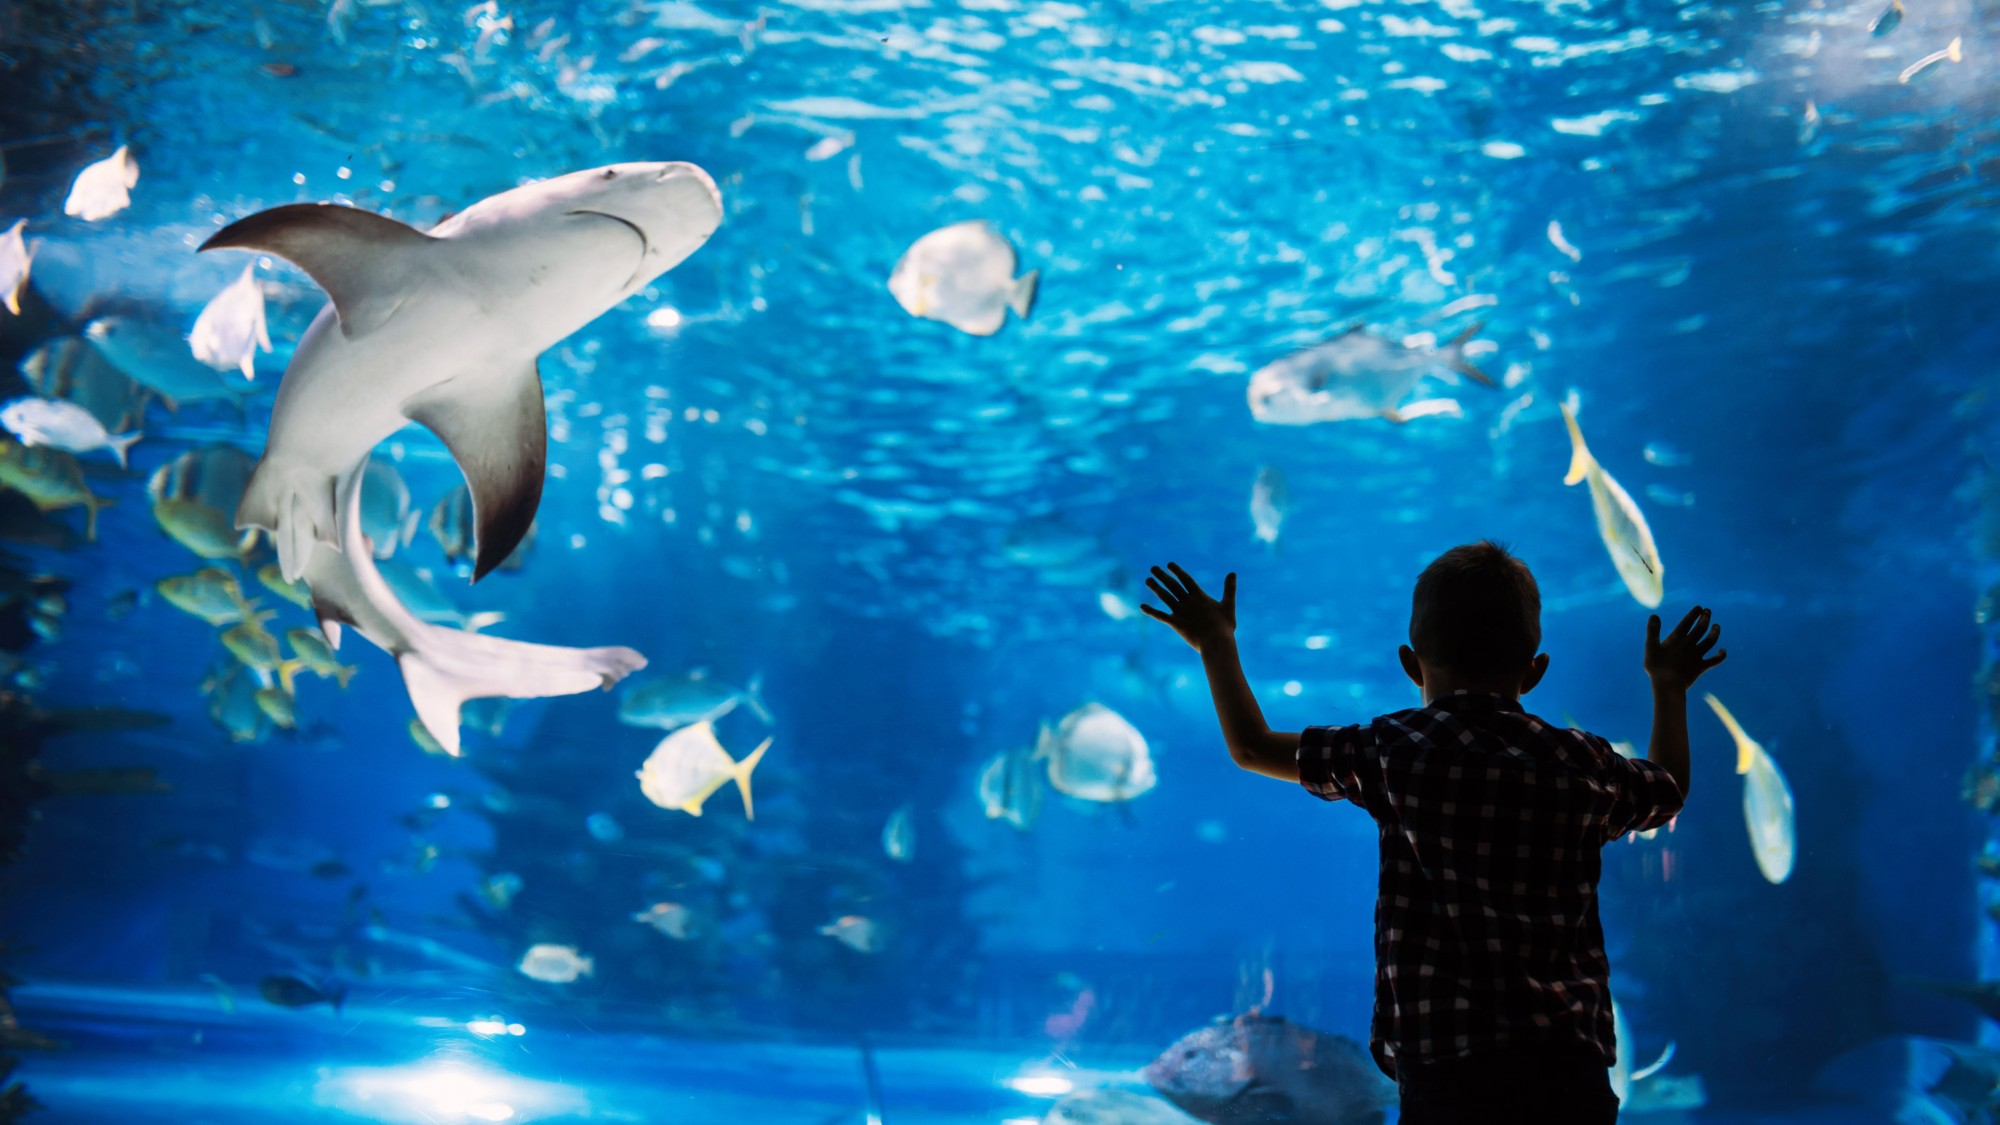 A silhouette of a child looking into a shark tank at an aquarium